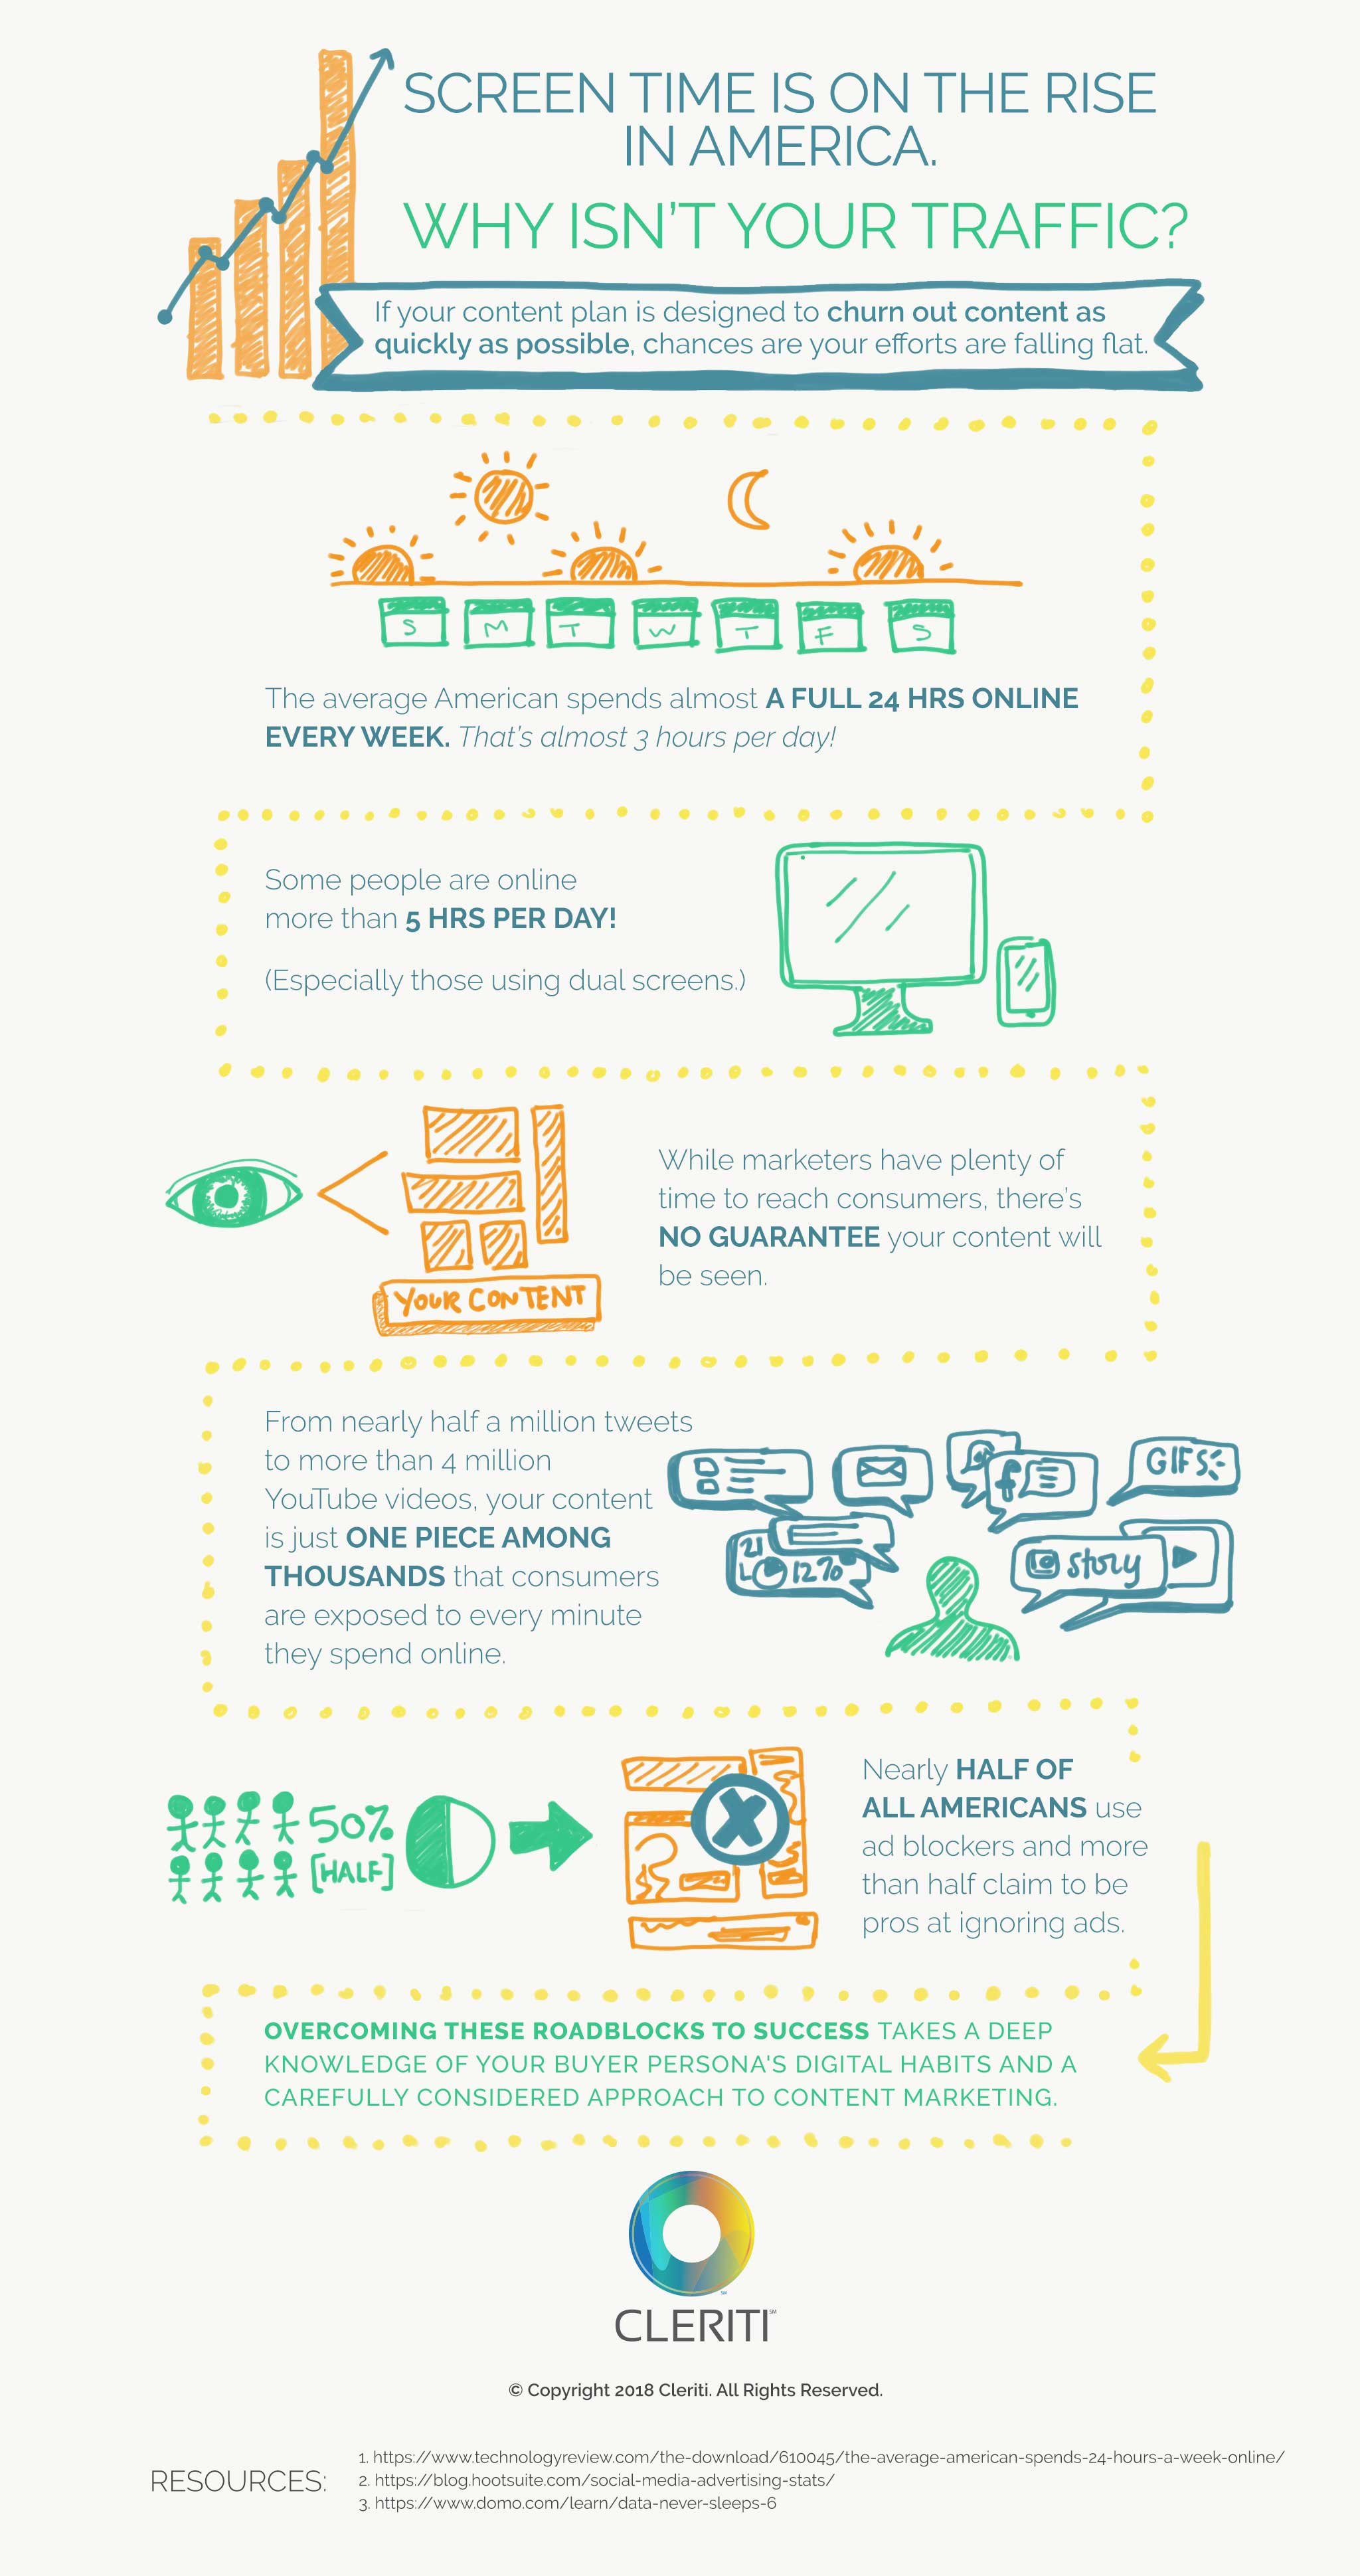 infographic-screentime-traffic